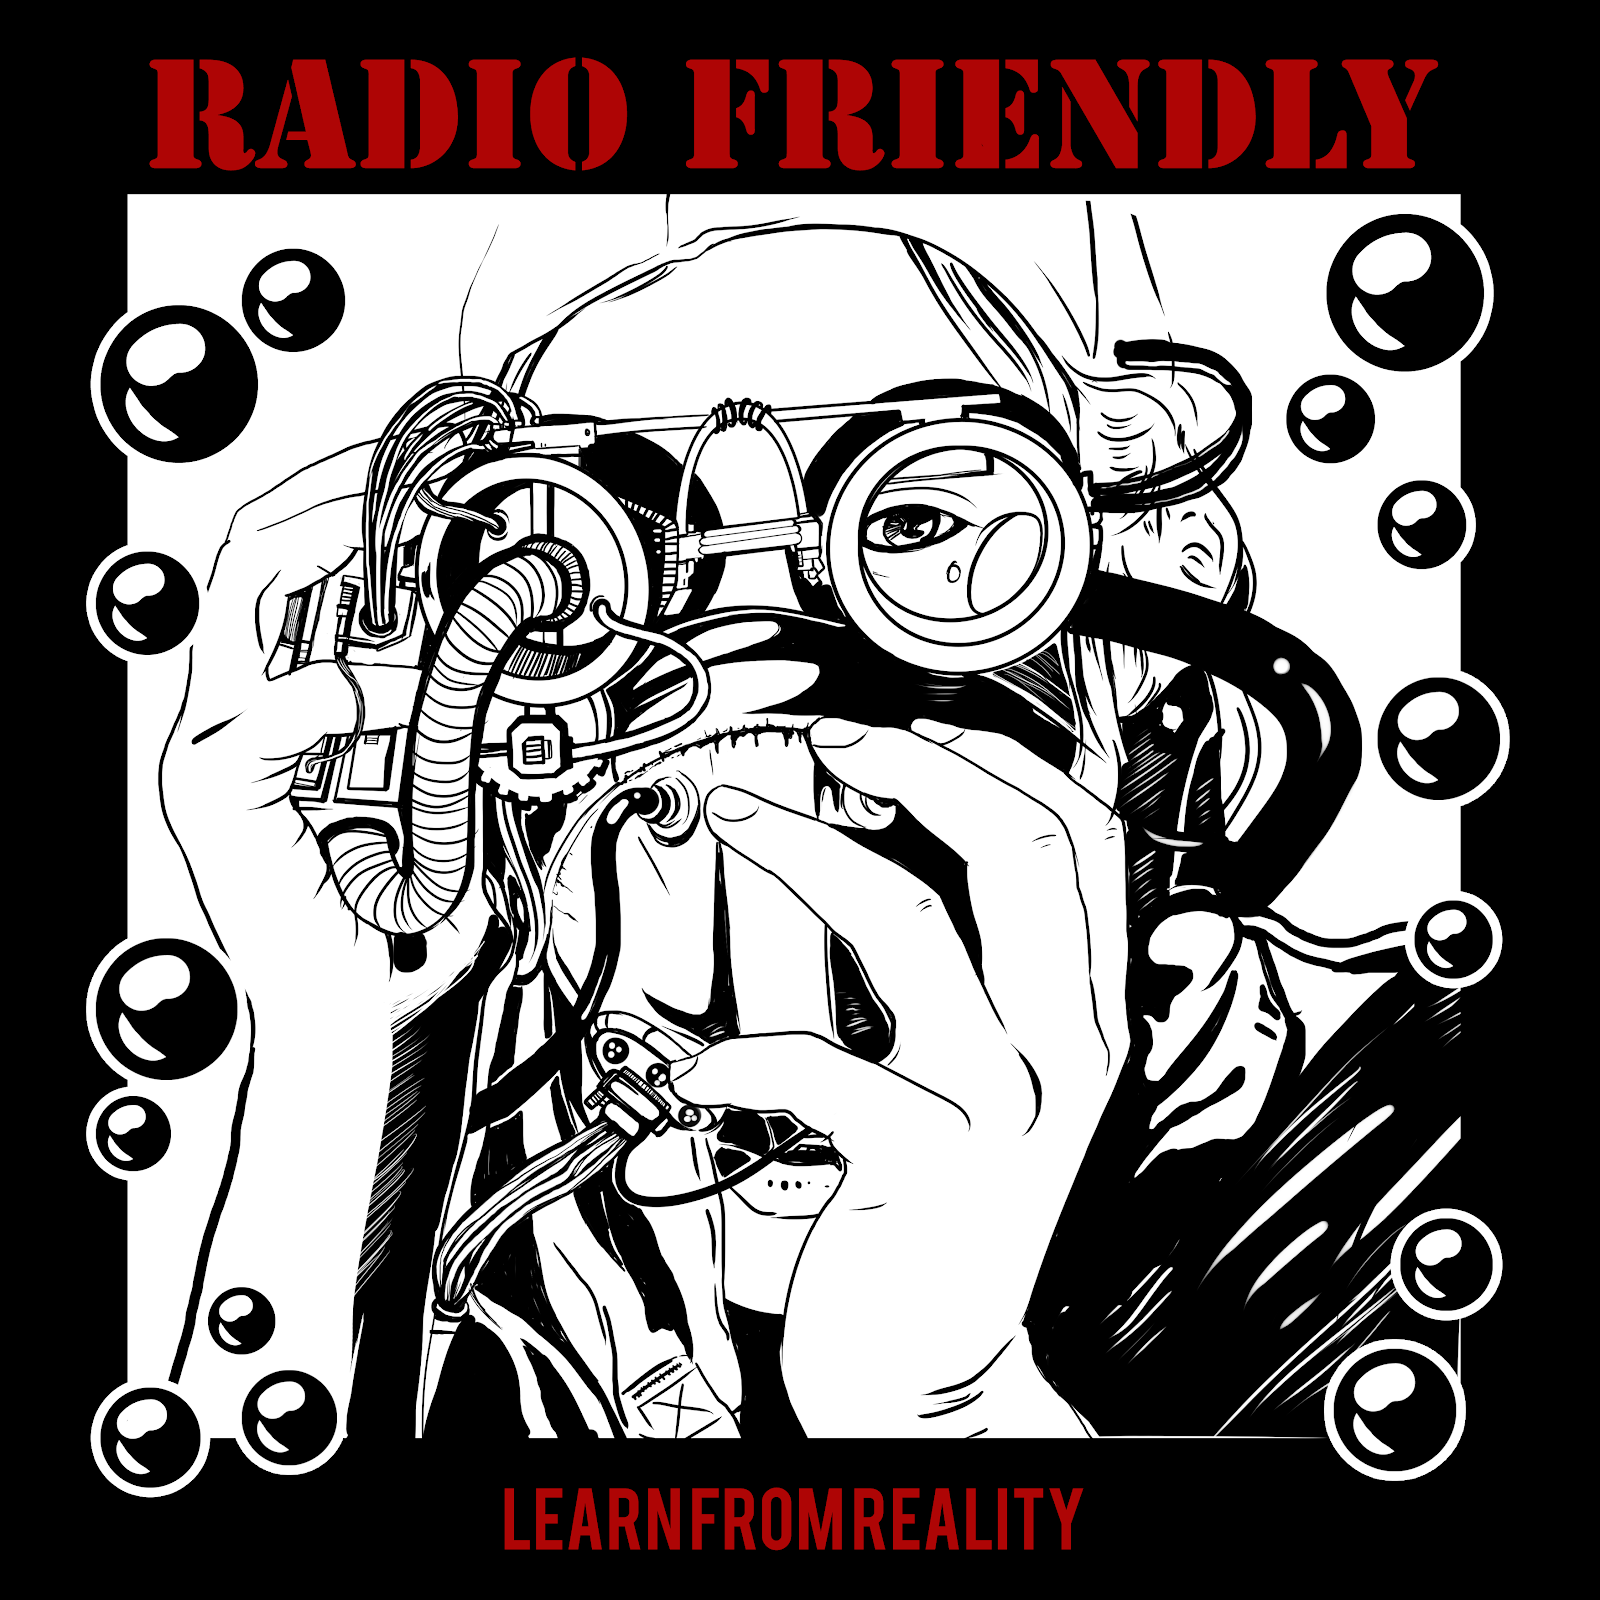 learn from reality radiofriendly